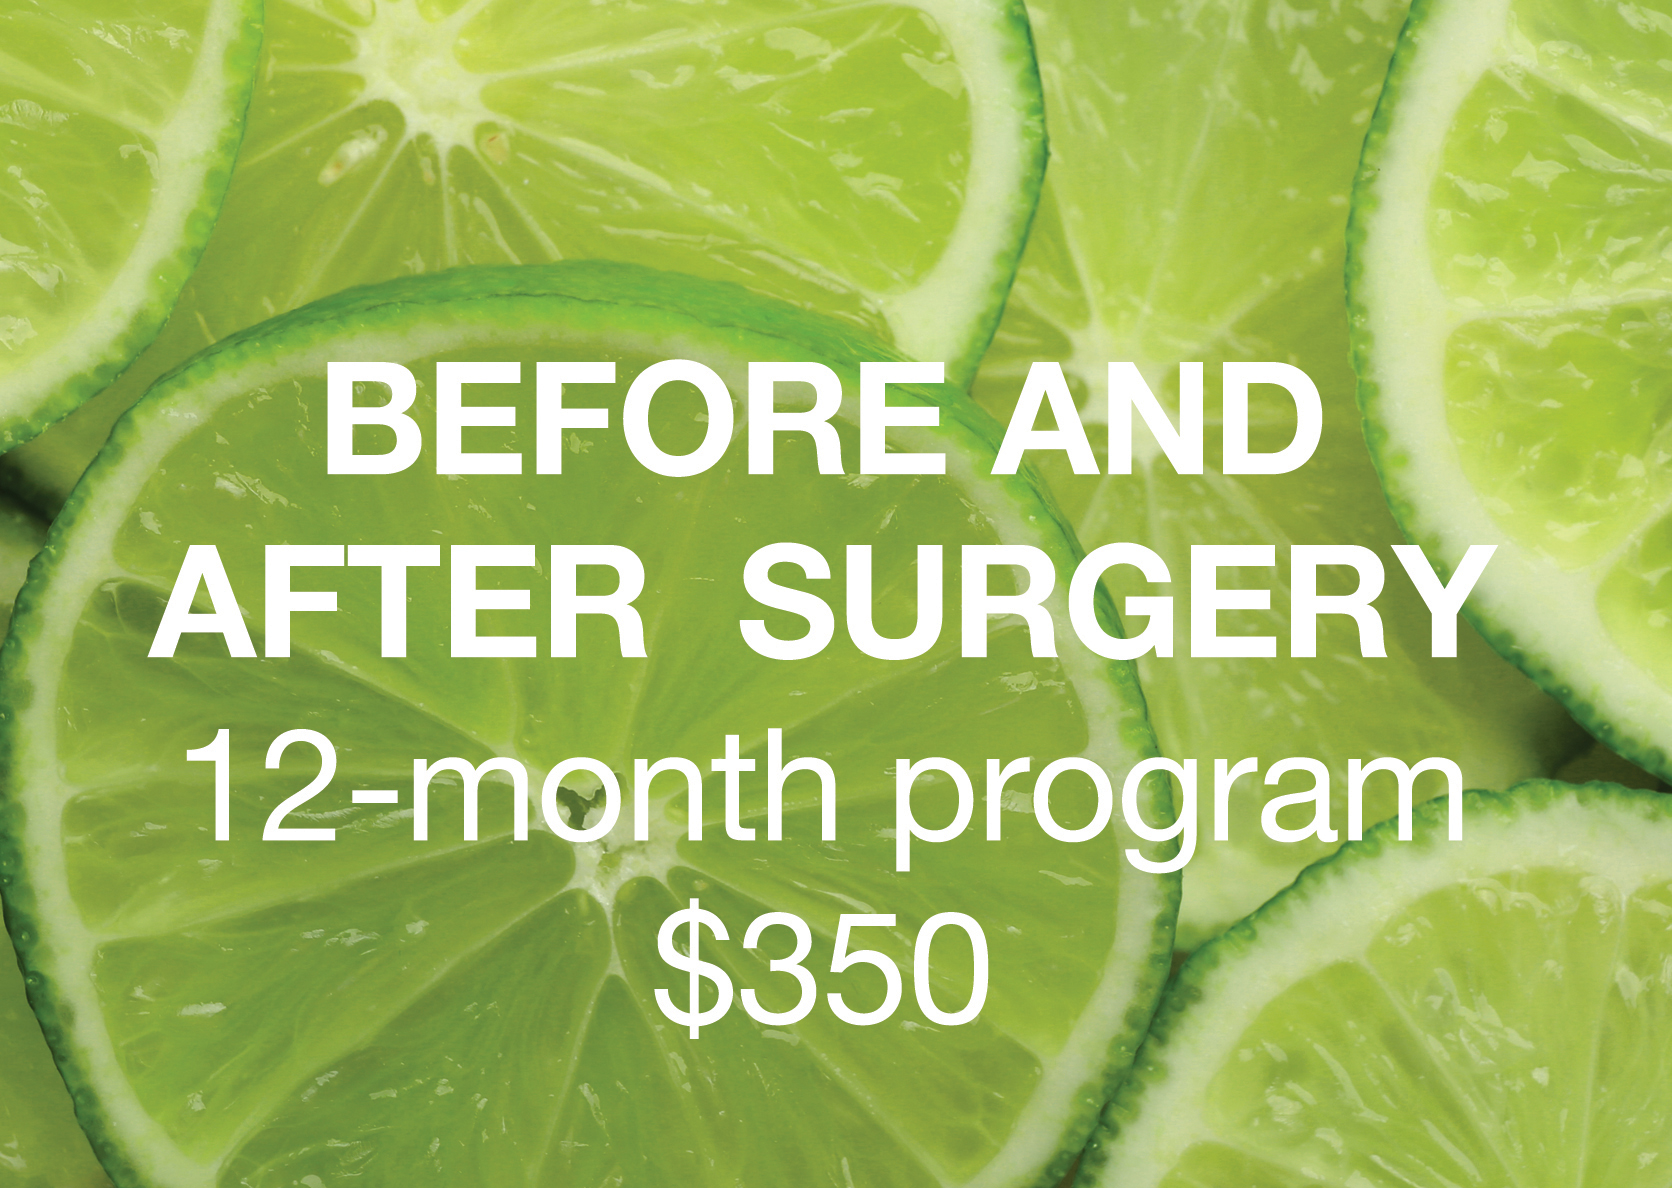 Limes-with-price-FINAL.jpg